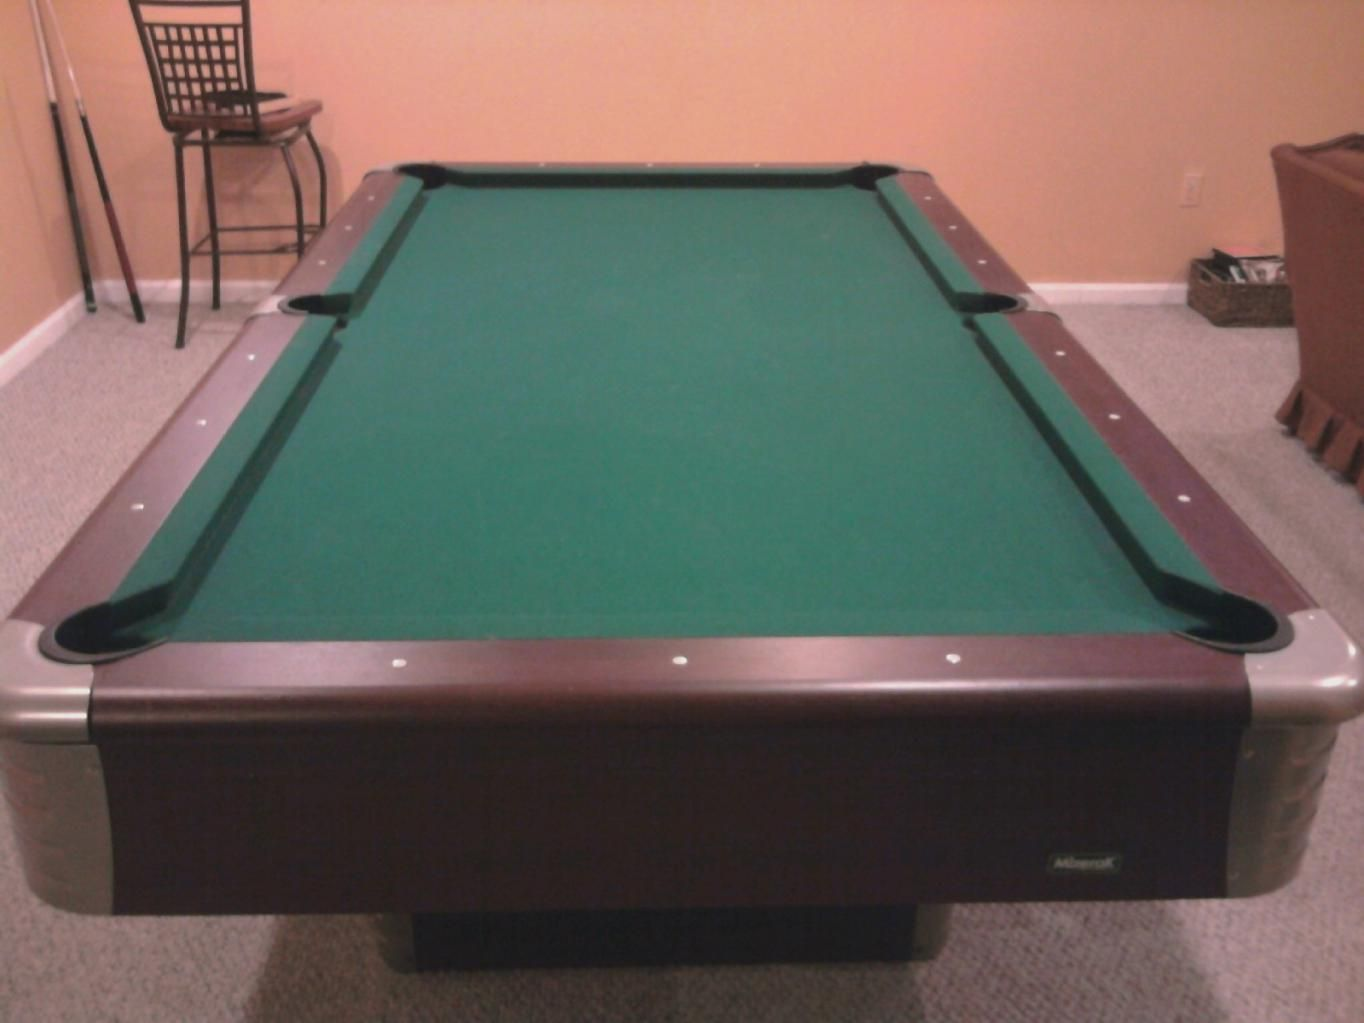 8ft pool table Create a fullsize pool table, if you